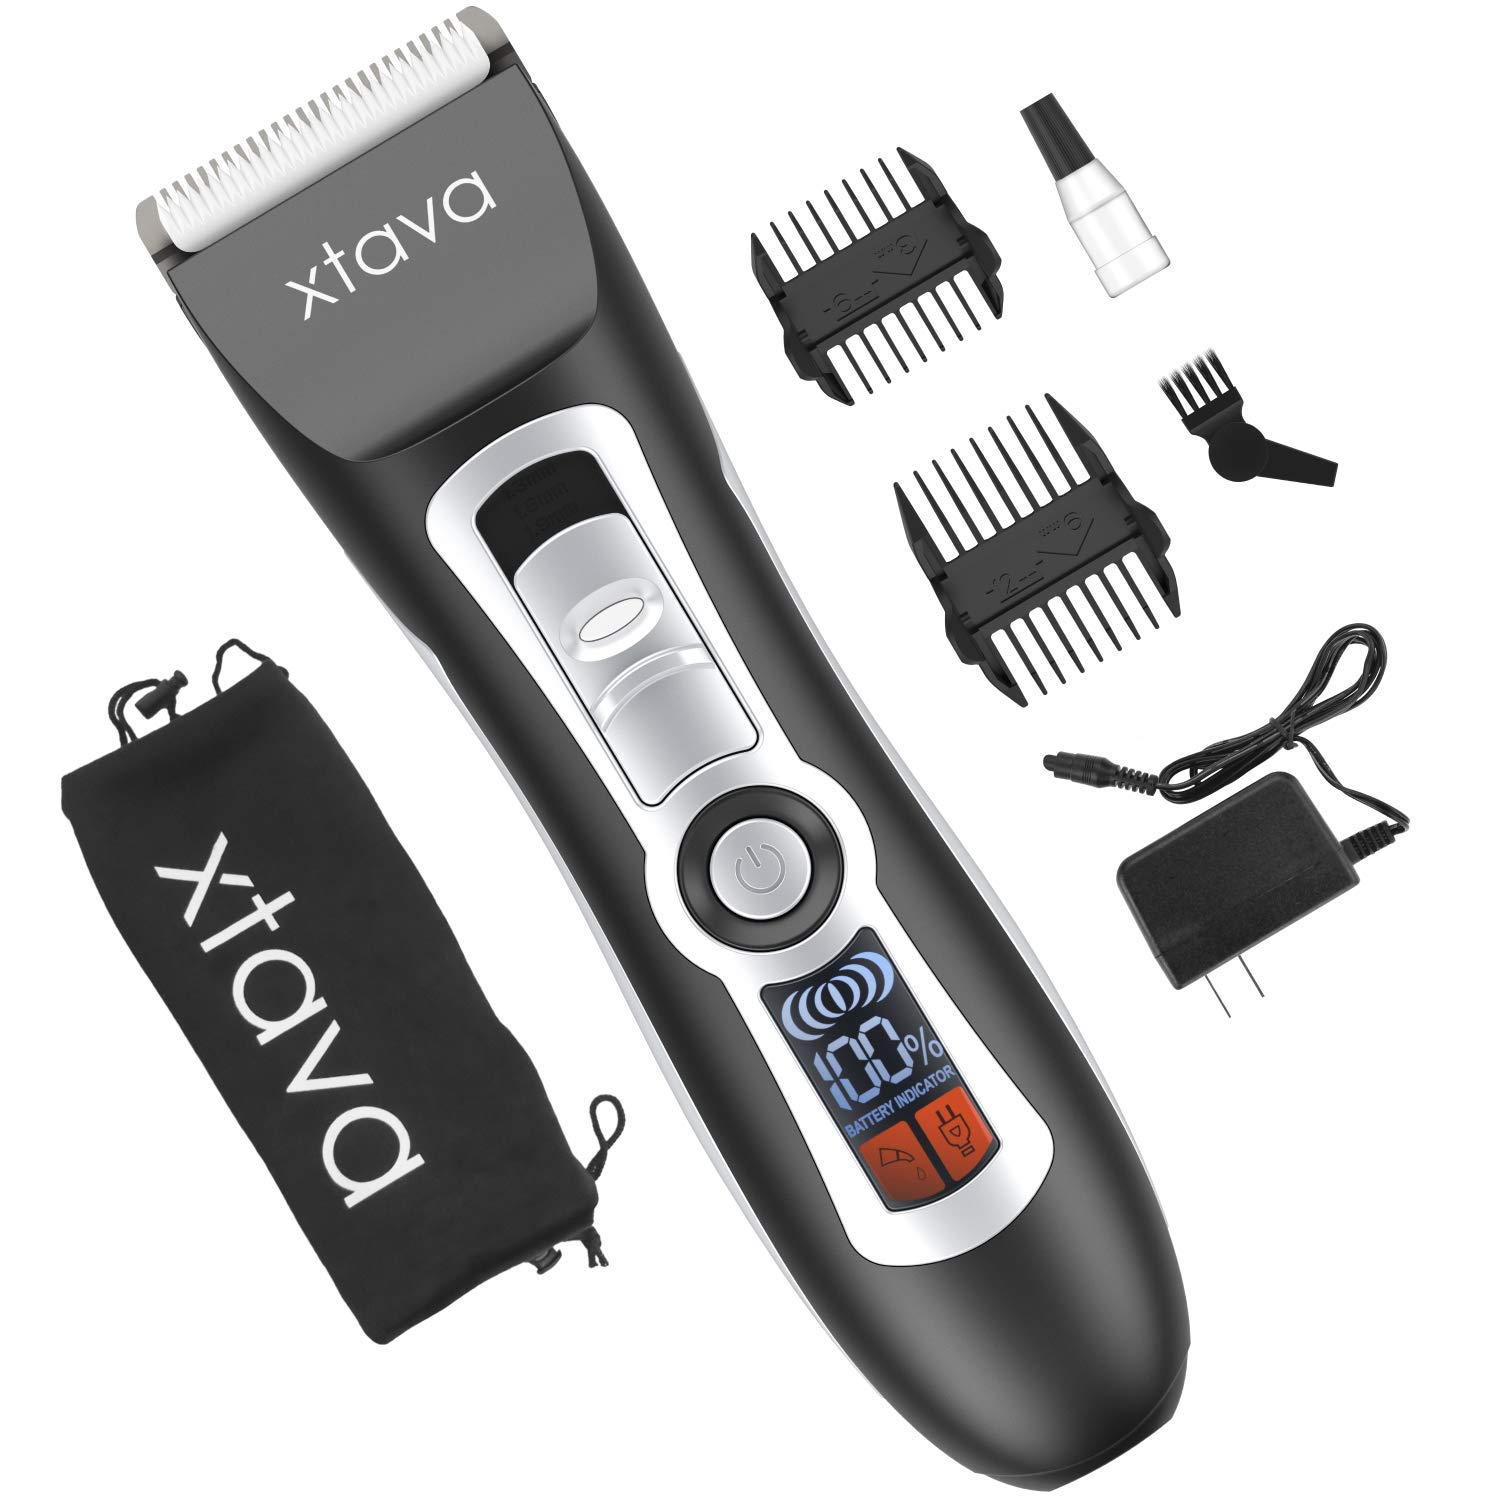 xtava Pro Cordless Hair Clippers and Beard Trimmer - 4.5 Hour Long Life Battery, LCD Display, Titanium and Ceramic Blades - Includes Length Guide Combs, Storage Bag, and Charging Adapter